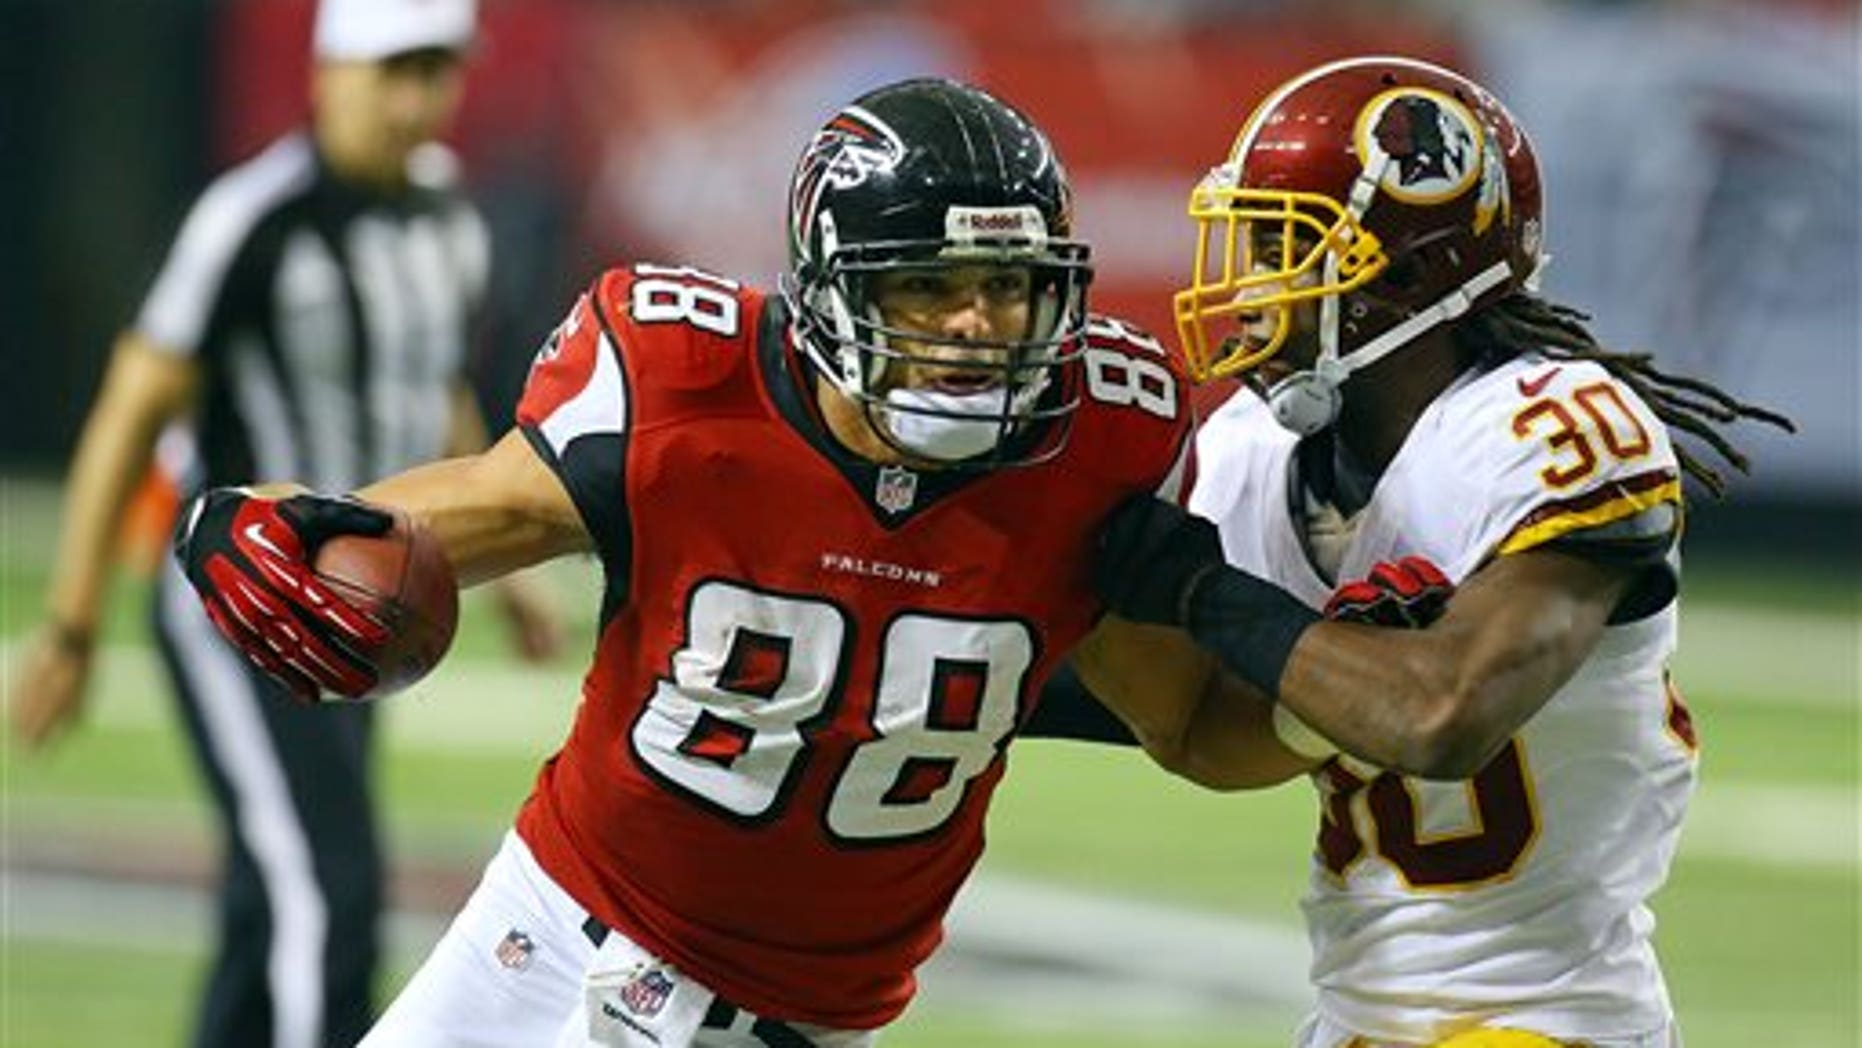 Atlanta Falcons tight end Tony Gonzalez (88) catches a pass against Washington Redskins cornerback E.J. Biggers during the second half of an NFL football game on Sunday, Dec. 15, 2013, in Atlanta. (AP Photo/Atlanta Journal-Constitution, Curtis Compton) MARIETTA DAILY OUT, GWINNETT DAILY POST OUT) LOCAL TV OUT (WXIA, WGCL, FOX 5)